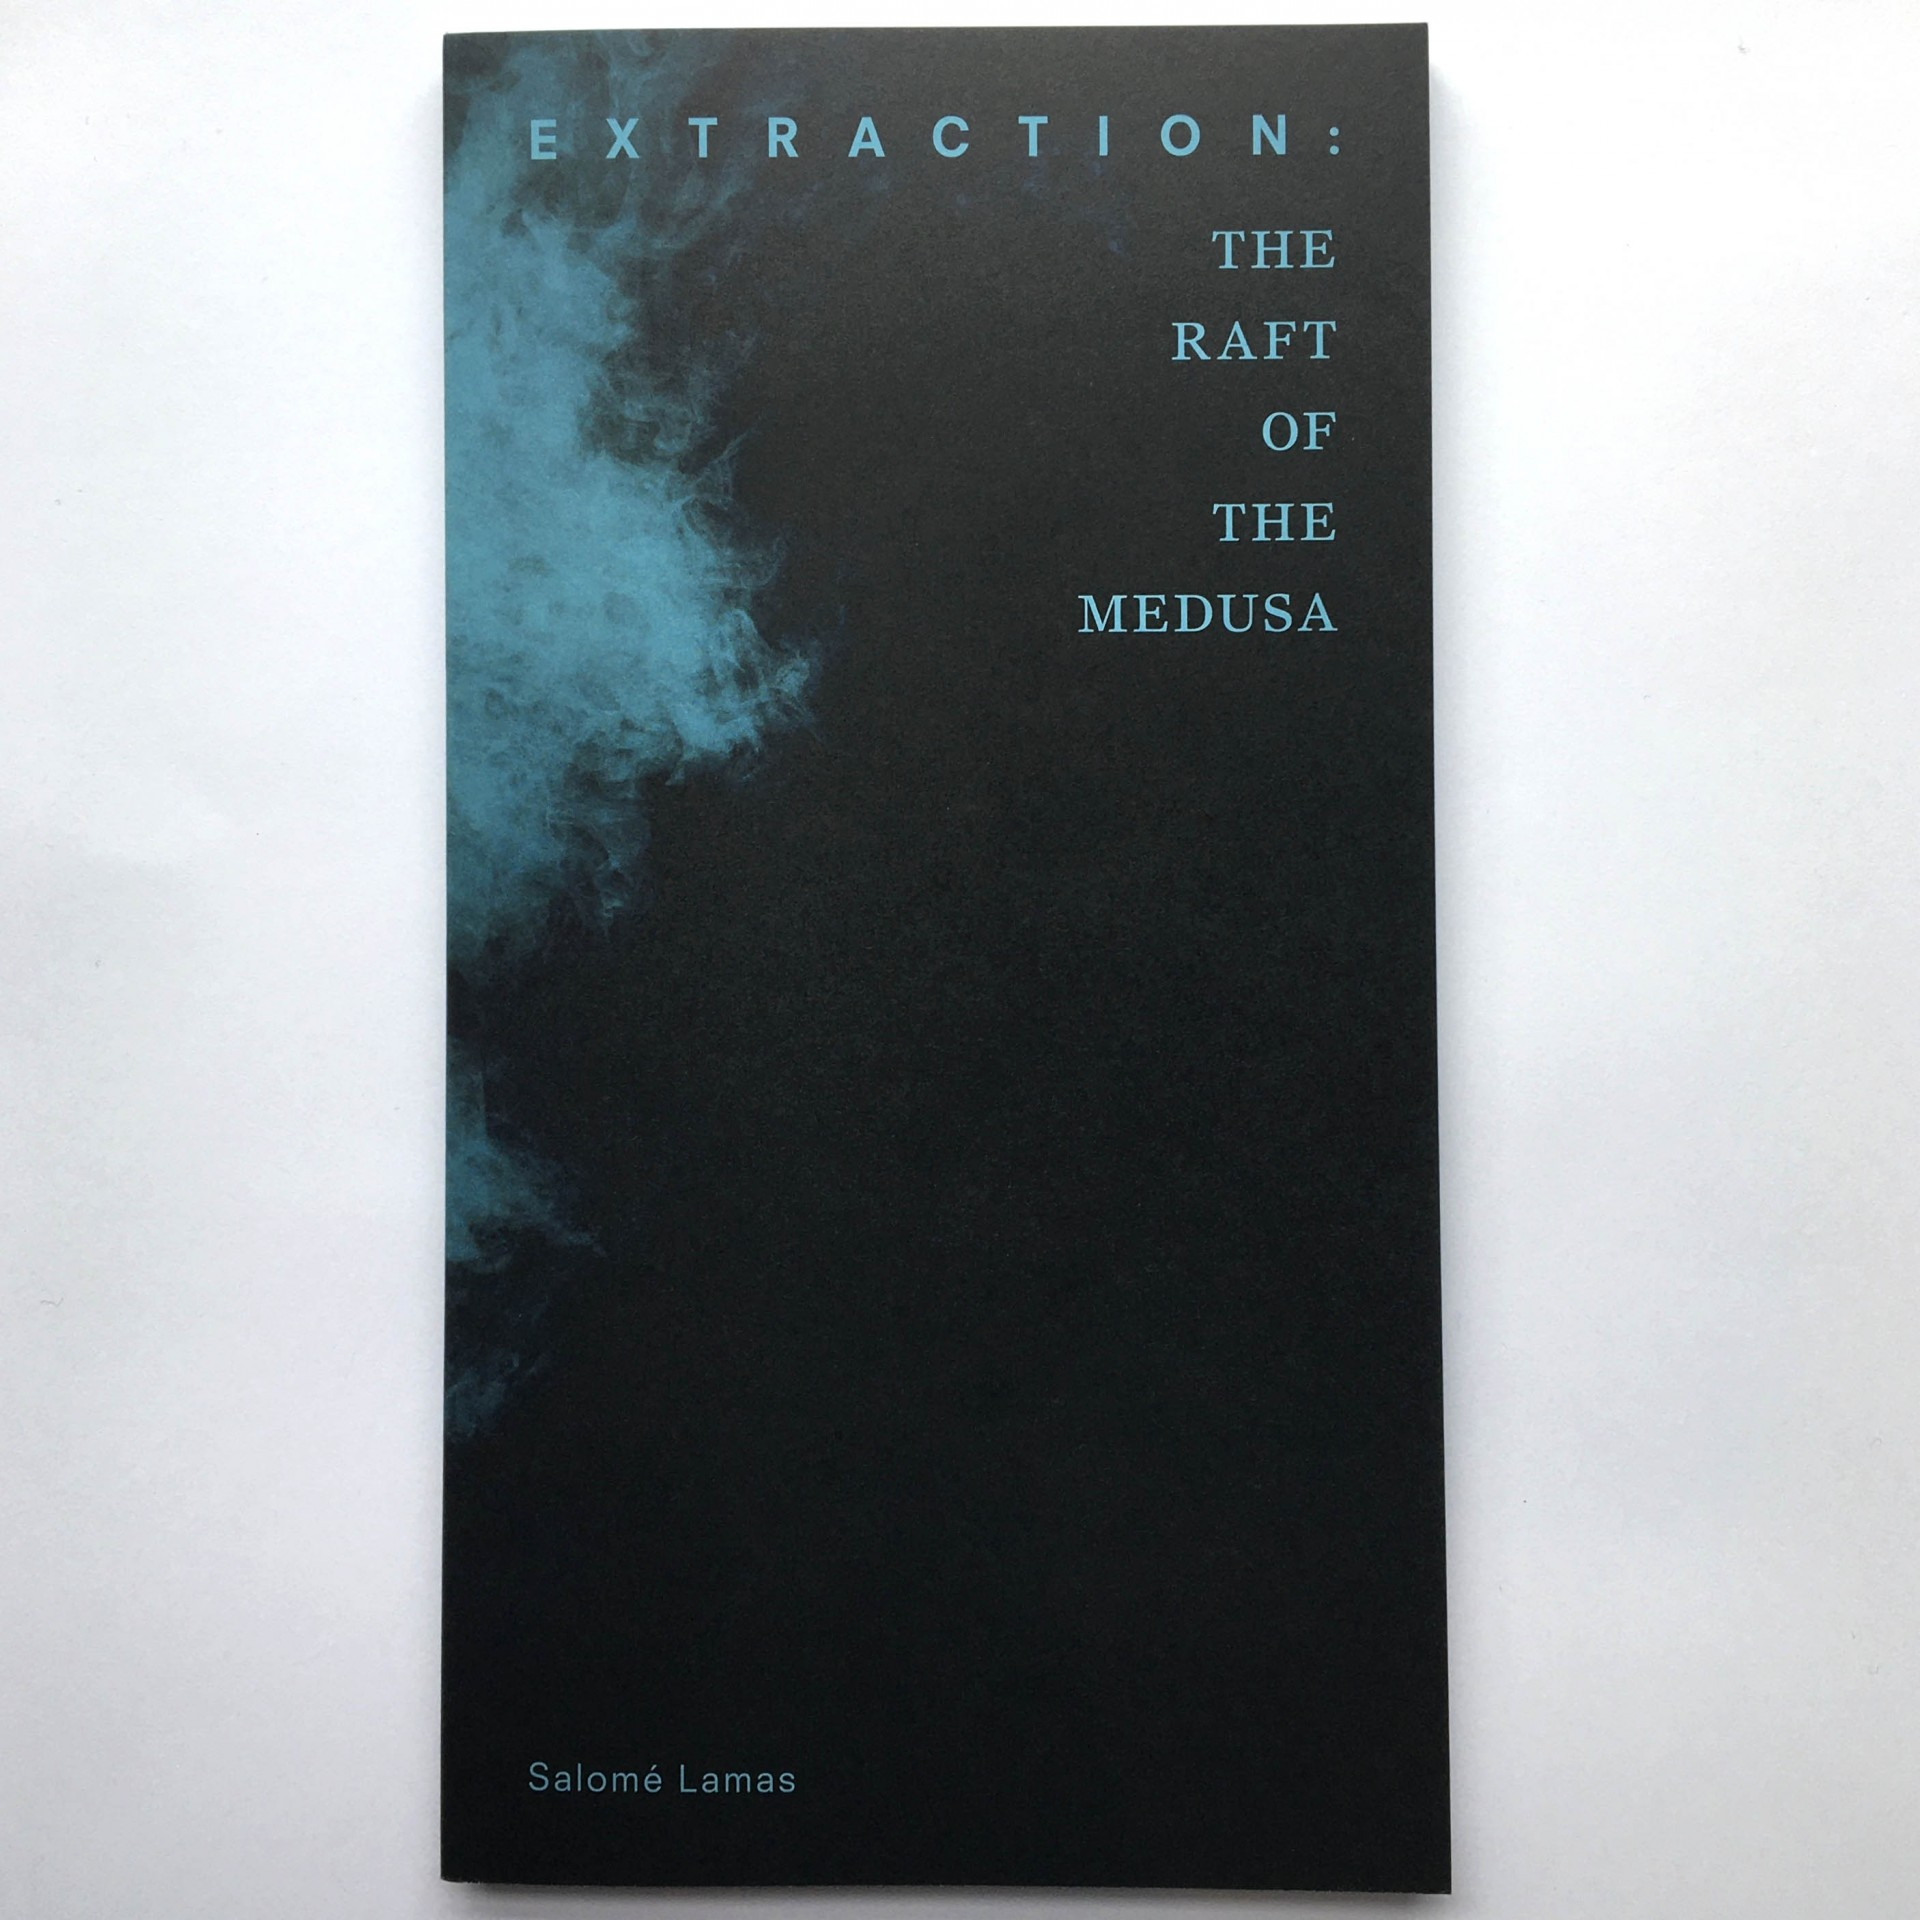 Extraction: The Raft of the Medusa